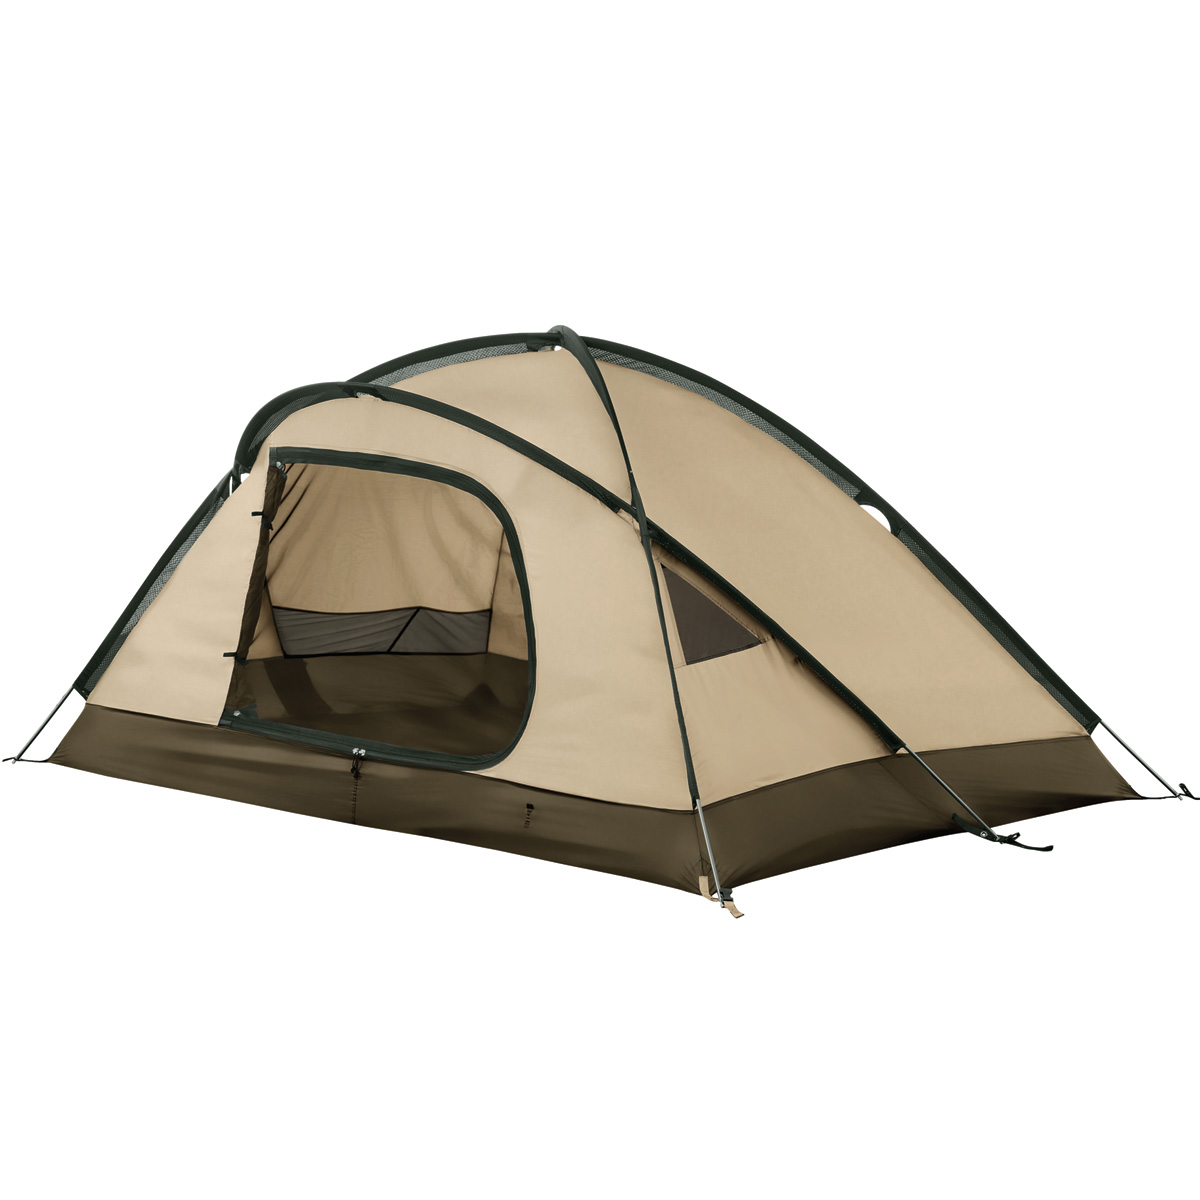 What Is The Best 2 Person Tent For The Money In 2019 ...